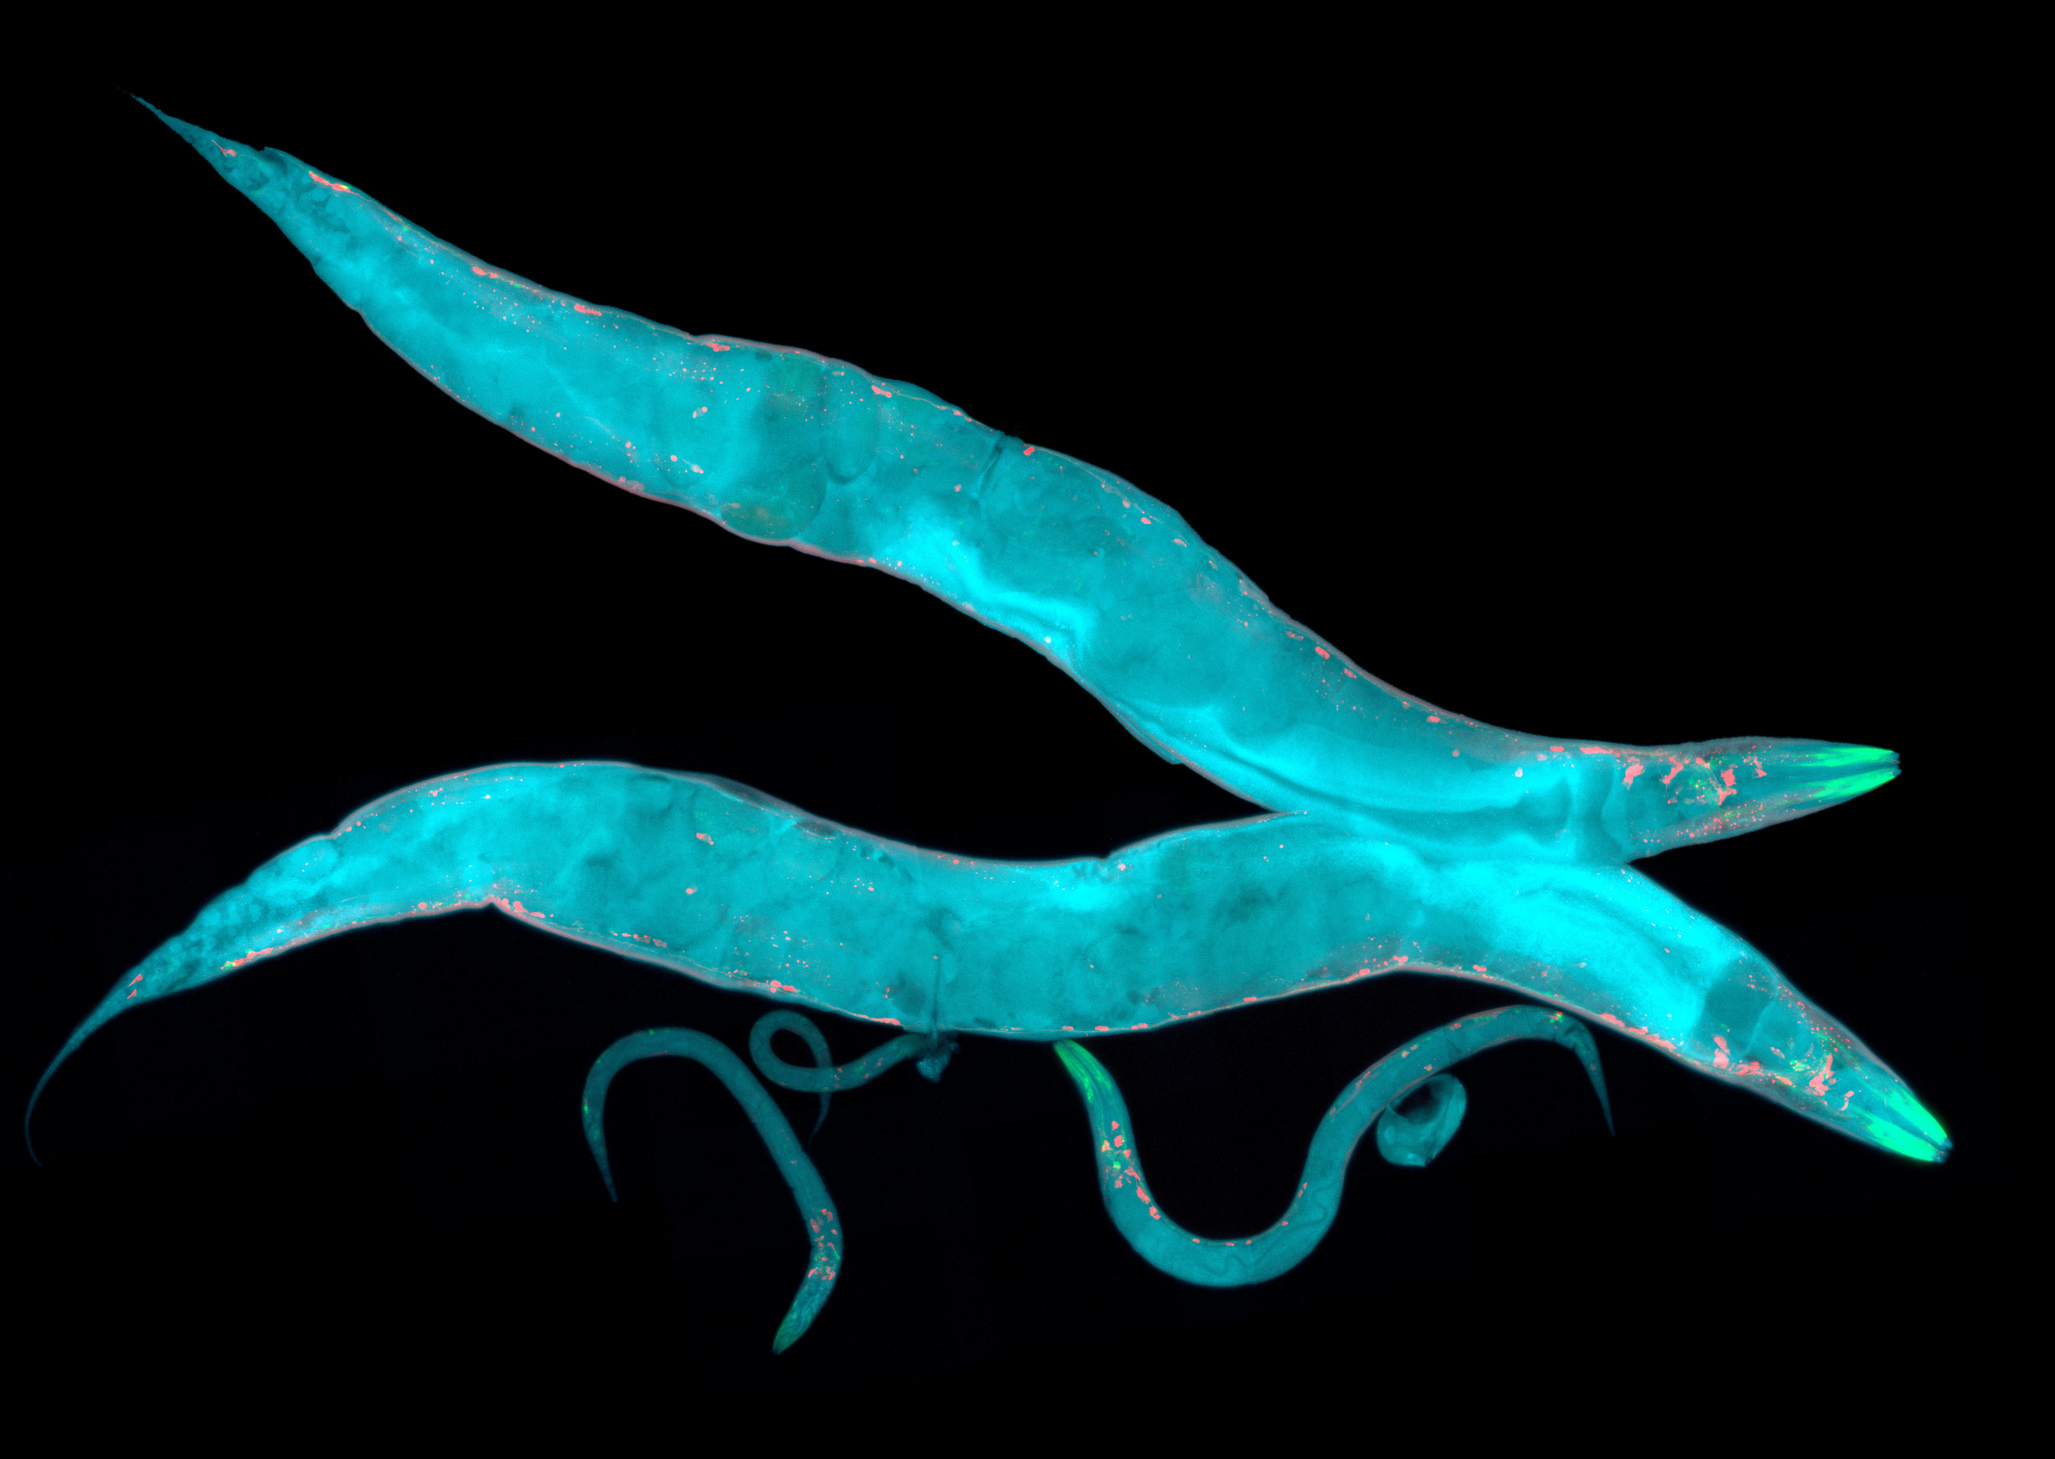 Caenorhabditis elegans, a free-living transparent nematode (roundworm), about 1mm long